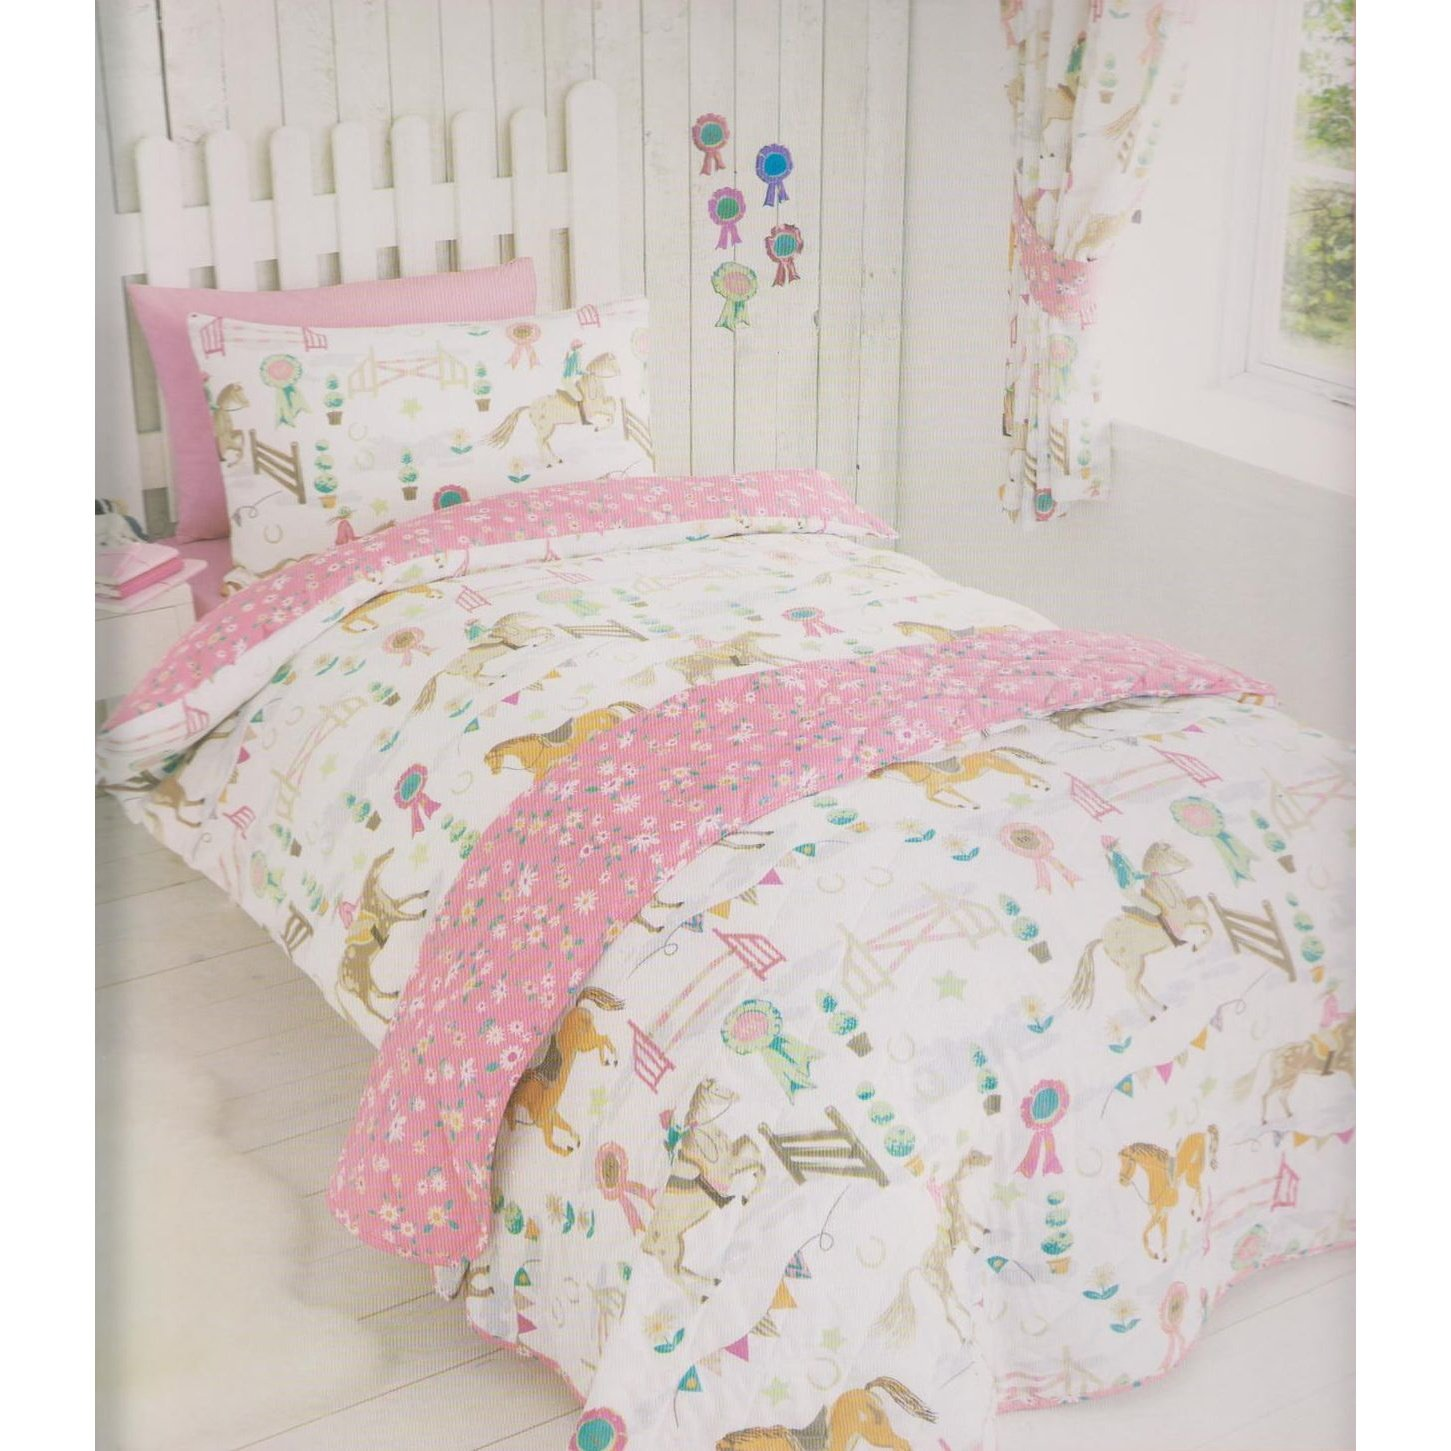 94 girls pink bedding